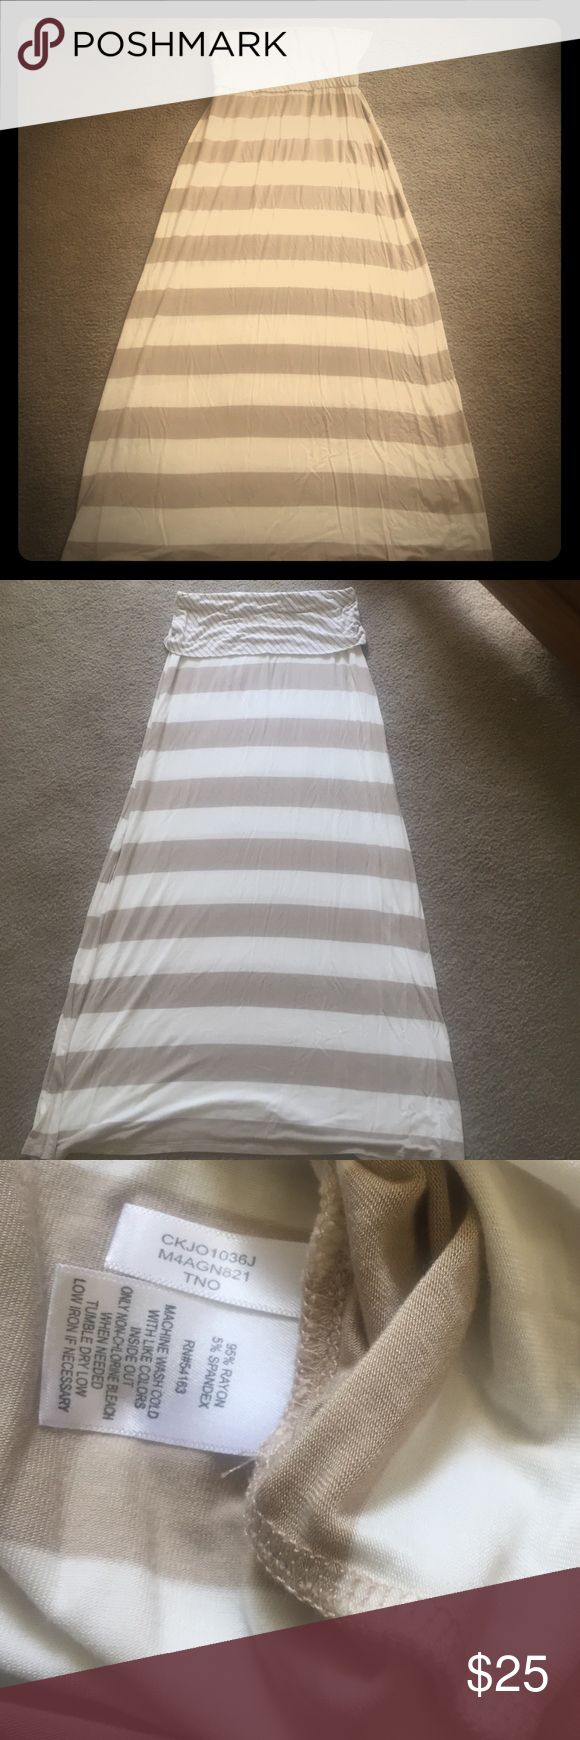 Versatile tube dress/fold it down for a skirt  NWOT never worn Calvin Klein beauty skirt or tube dress. Forget this cold raining ☔️ time and get ready for the sunshine ☀️ soon! No damage, no rips or tears. Size is a medium but would fit a large gorgeous! It's brand new just no tags.  Calvin Klein Dresses Maxi